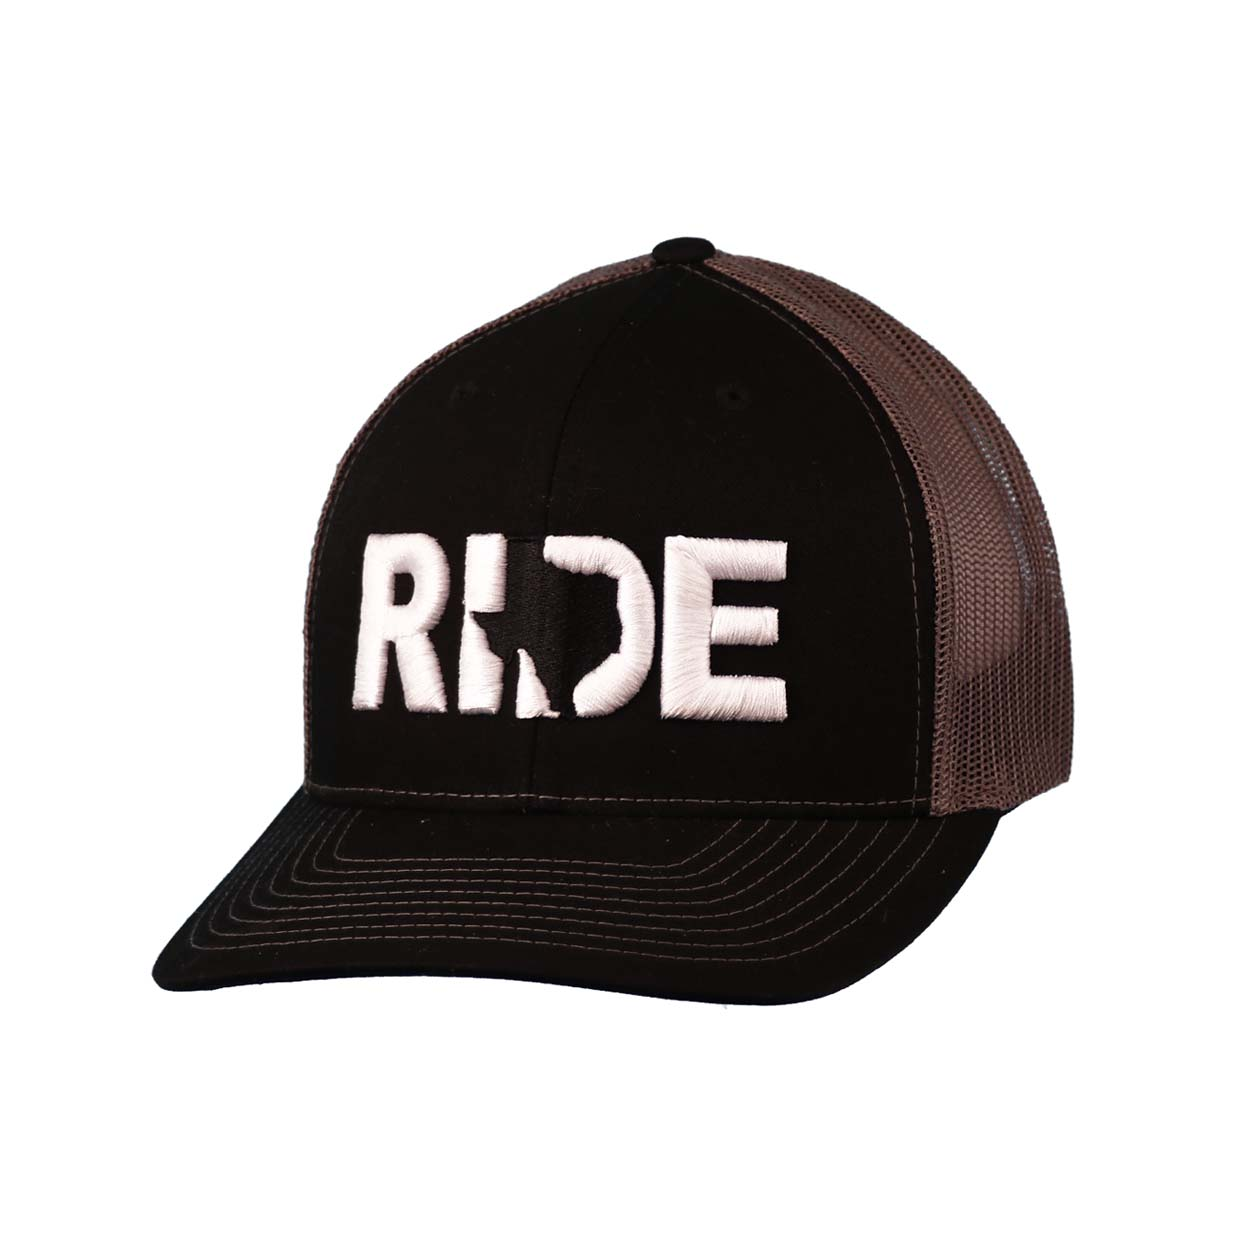 Ride Texas Classic Embroidered Snapback Trucker Hat Black/White